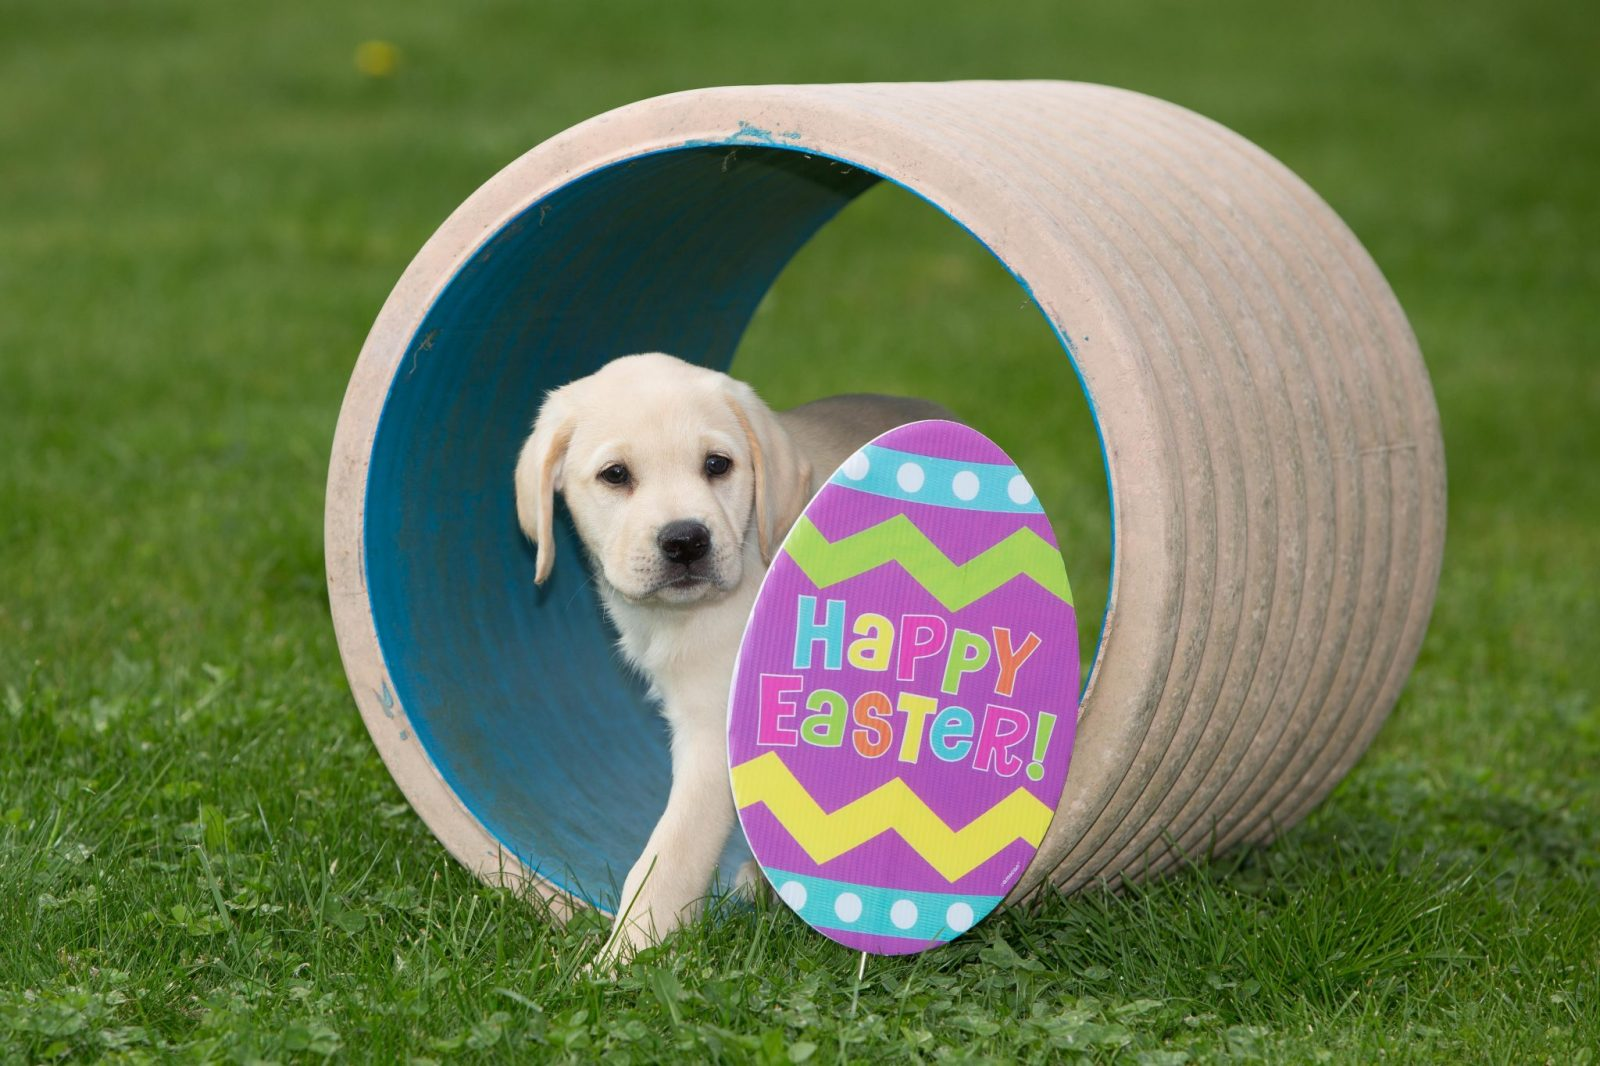 puppy with an egg